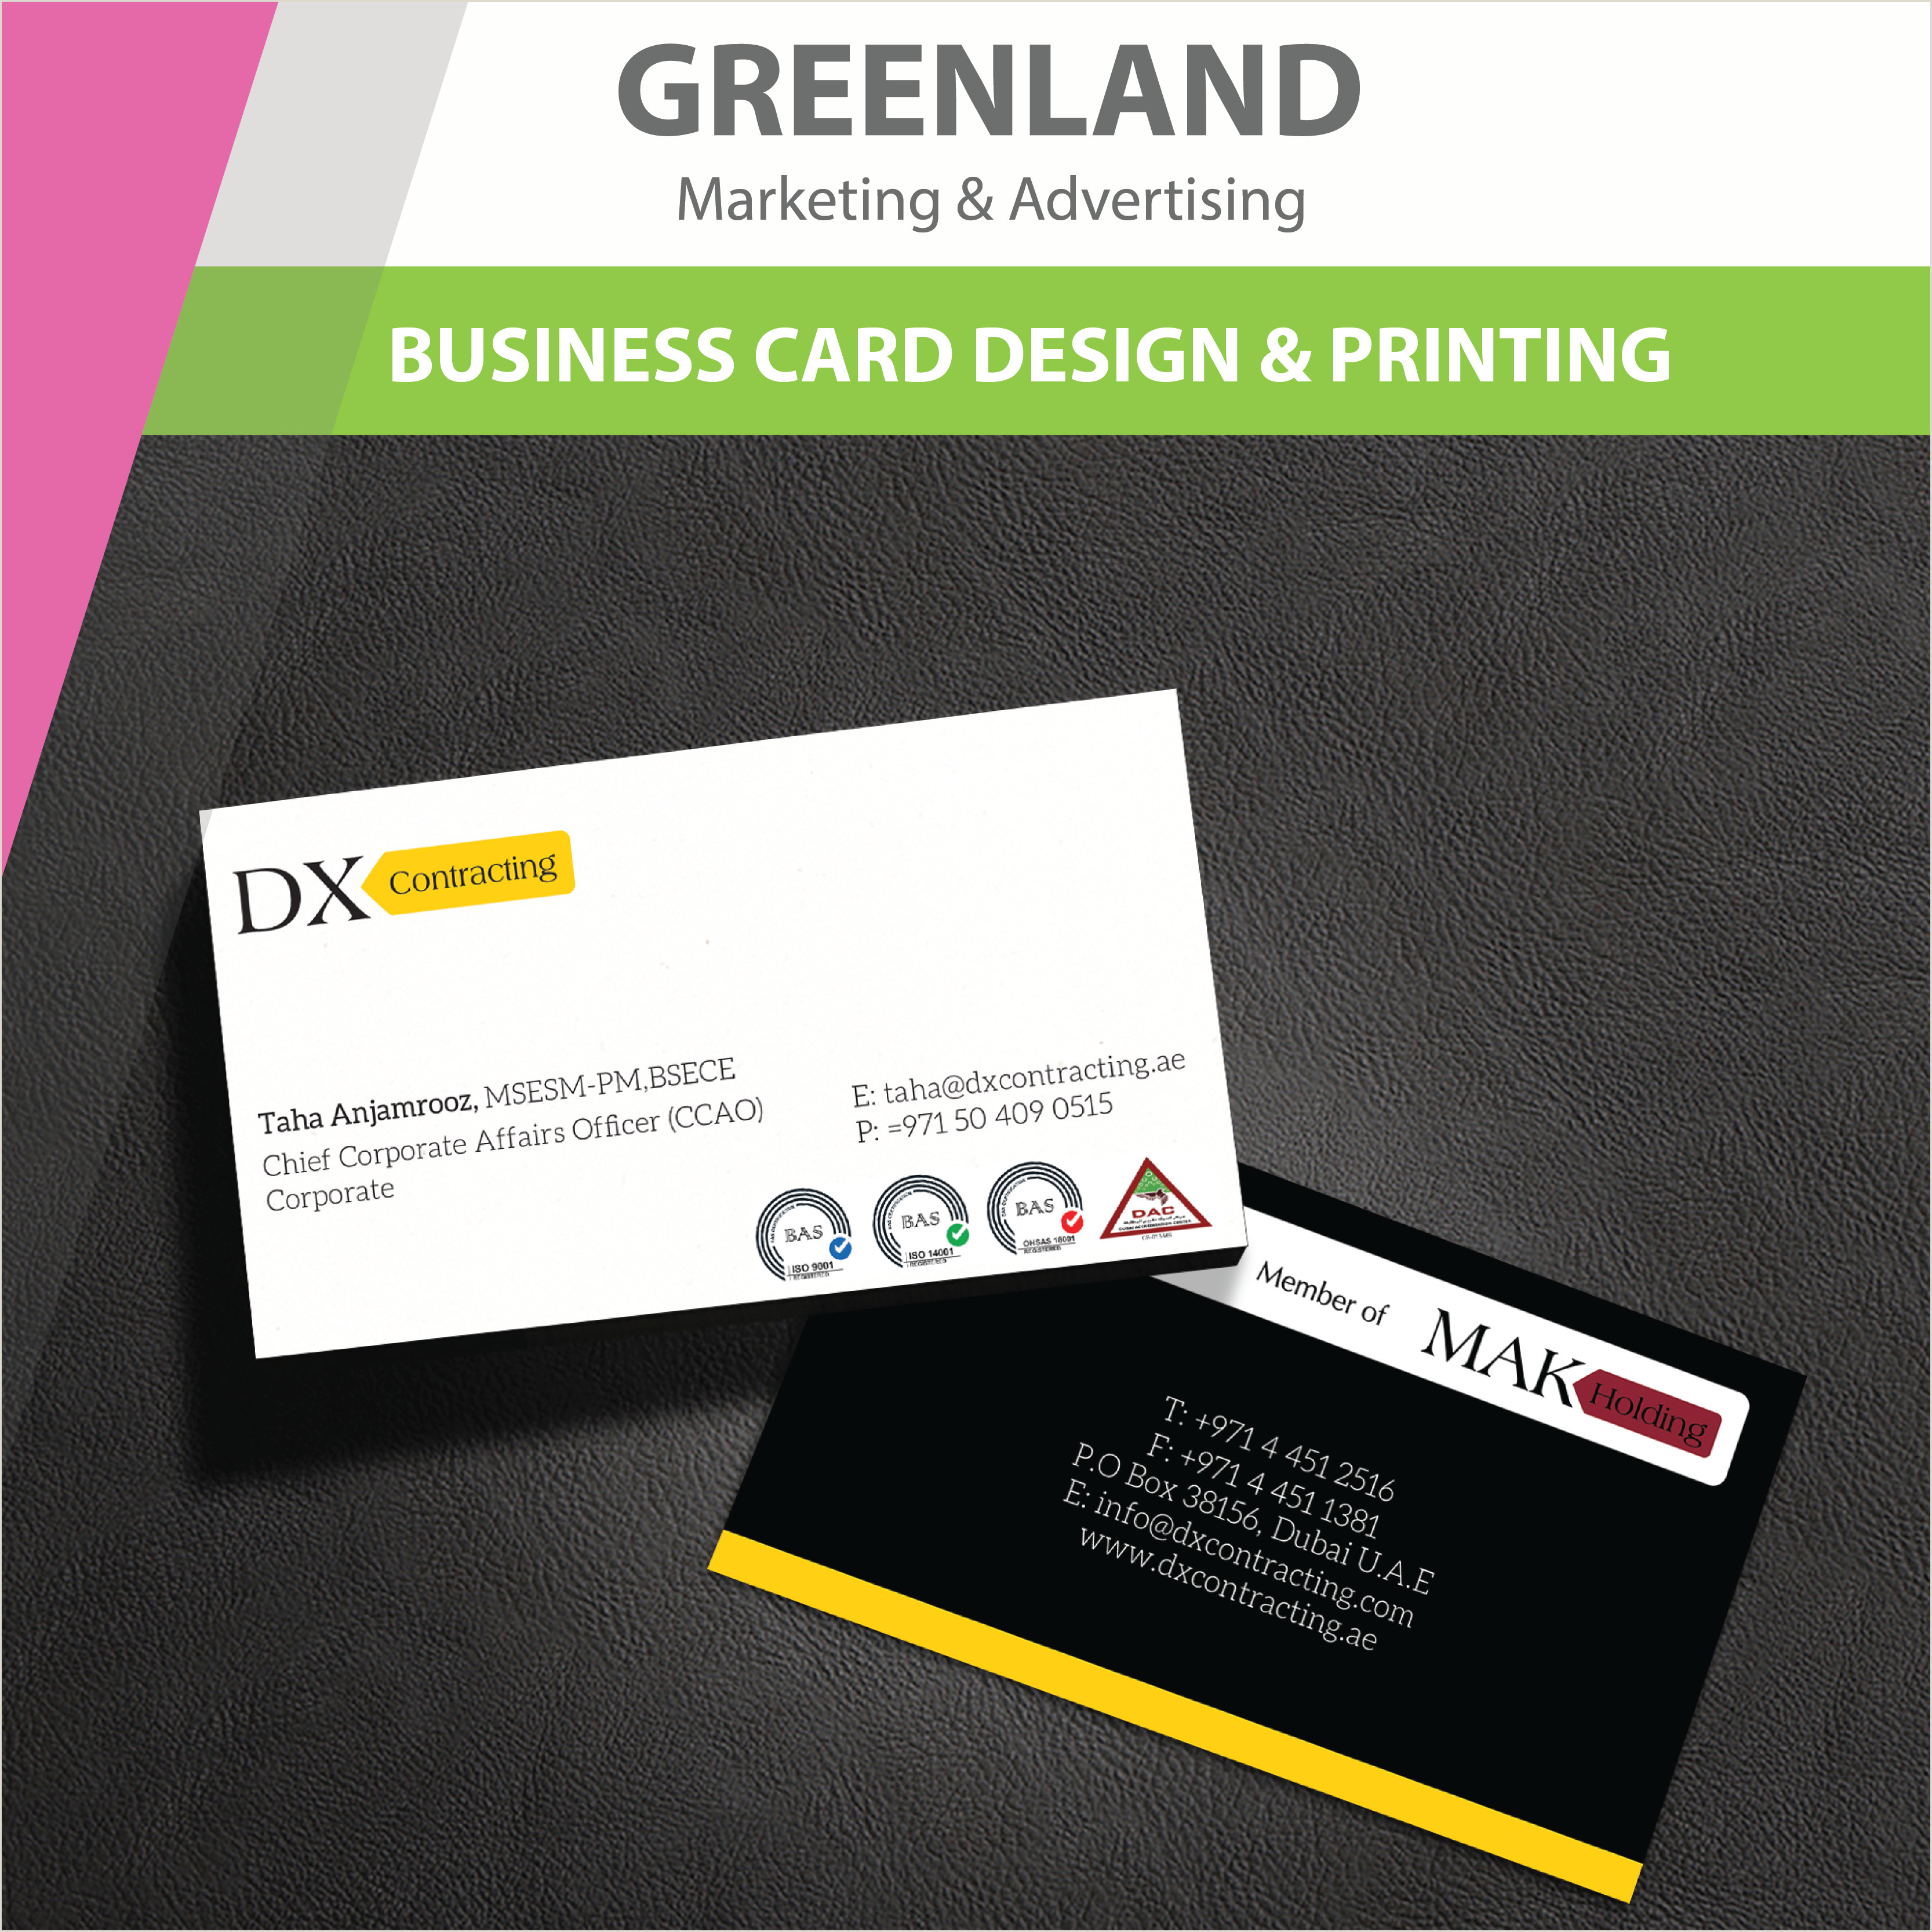 Business Card Simple Design A Simple Yet Elegant And Corporate Looking Businesscard